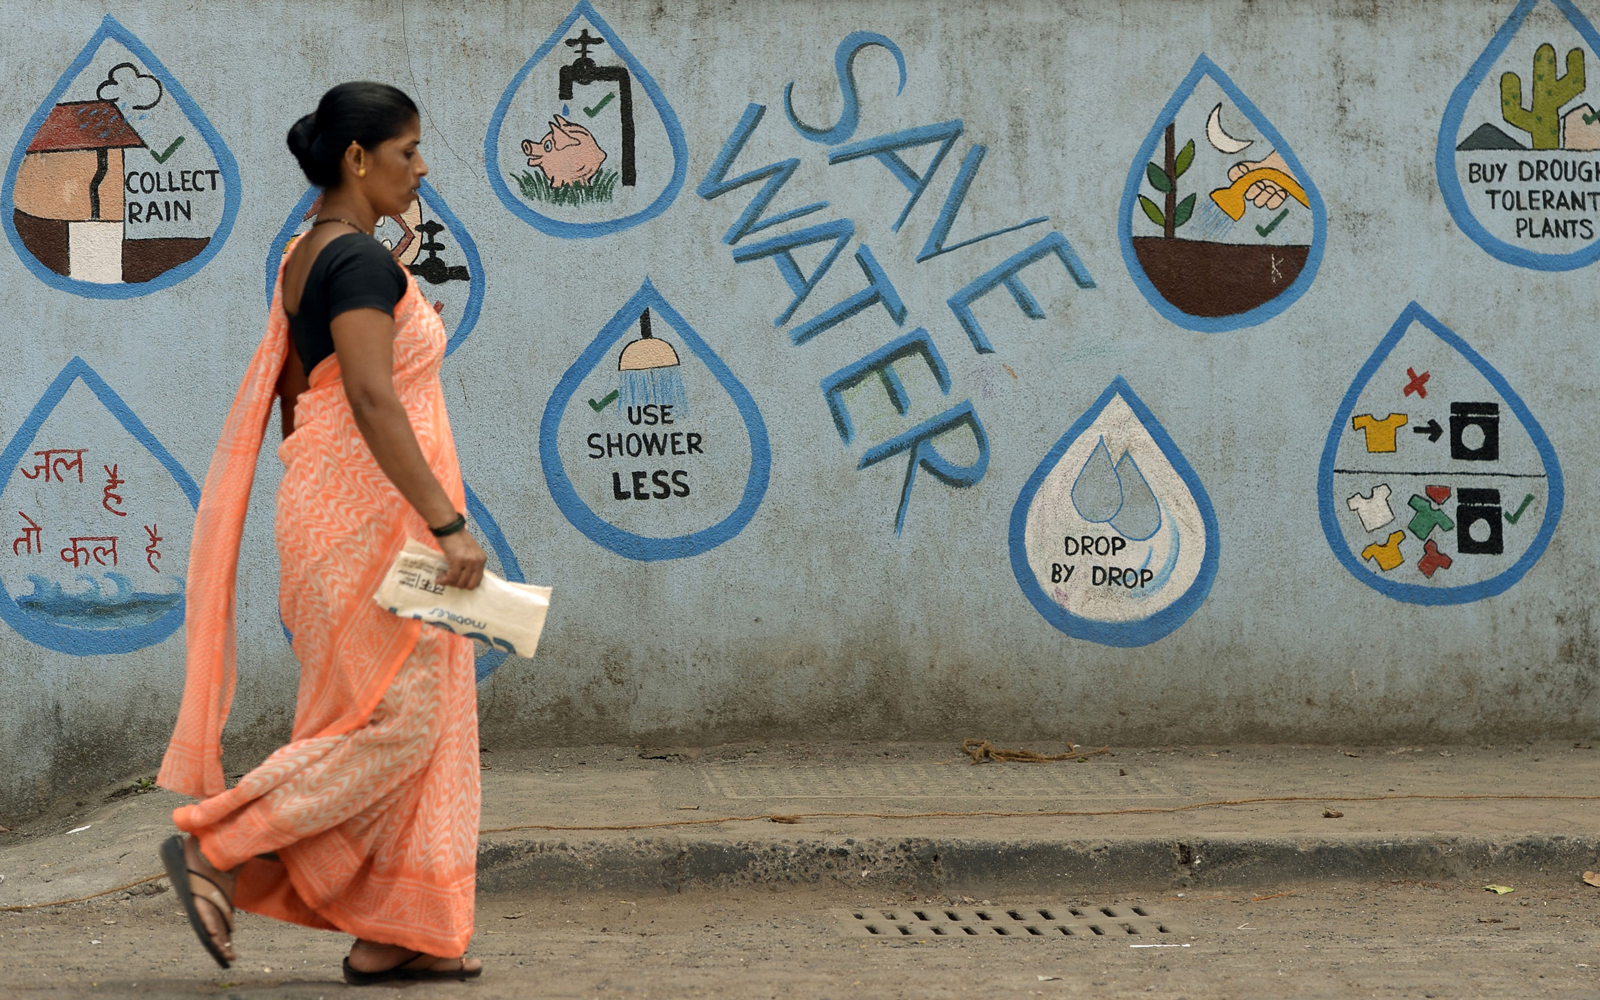 World Water Day: What To Know About The Water Crisis